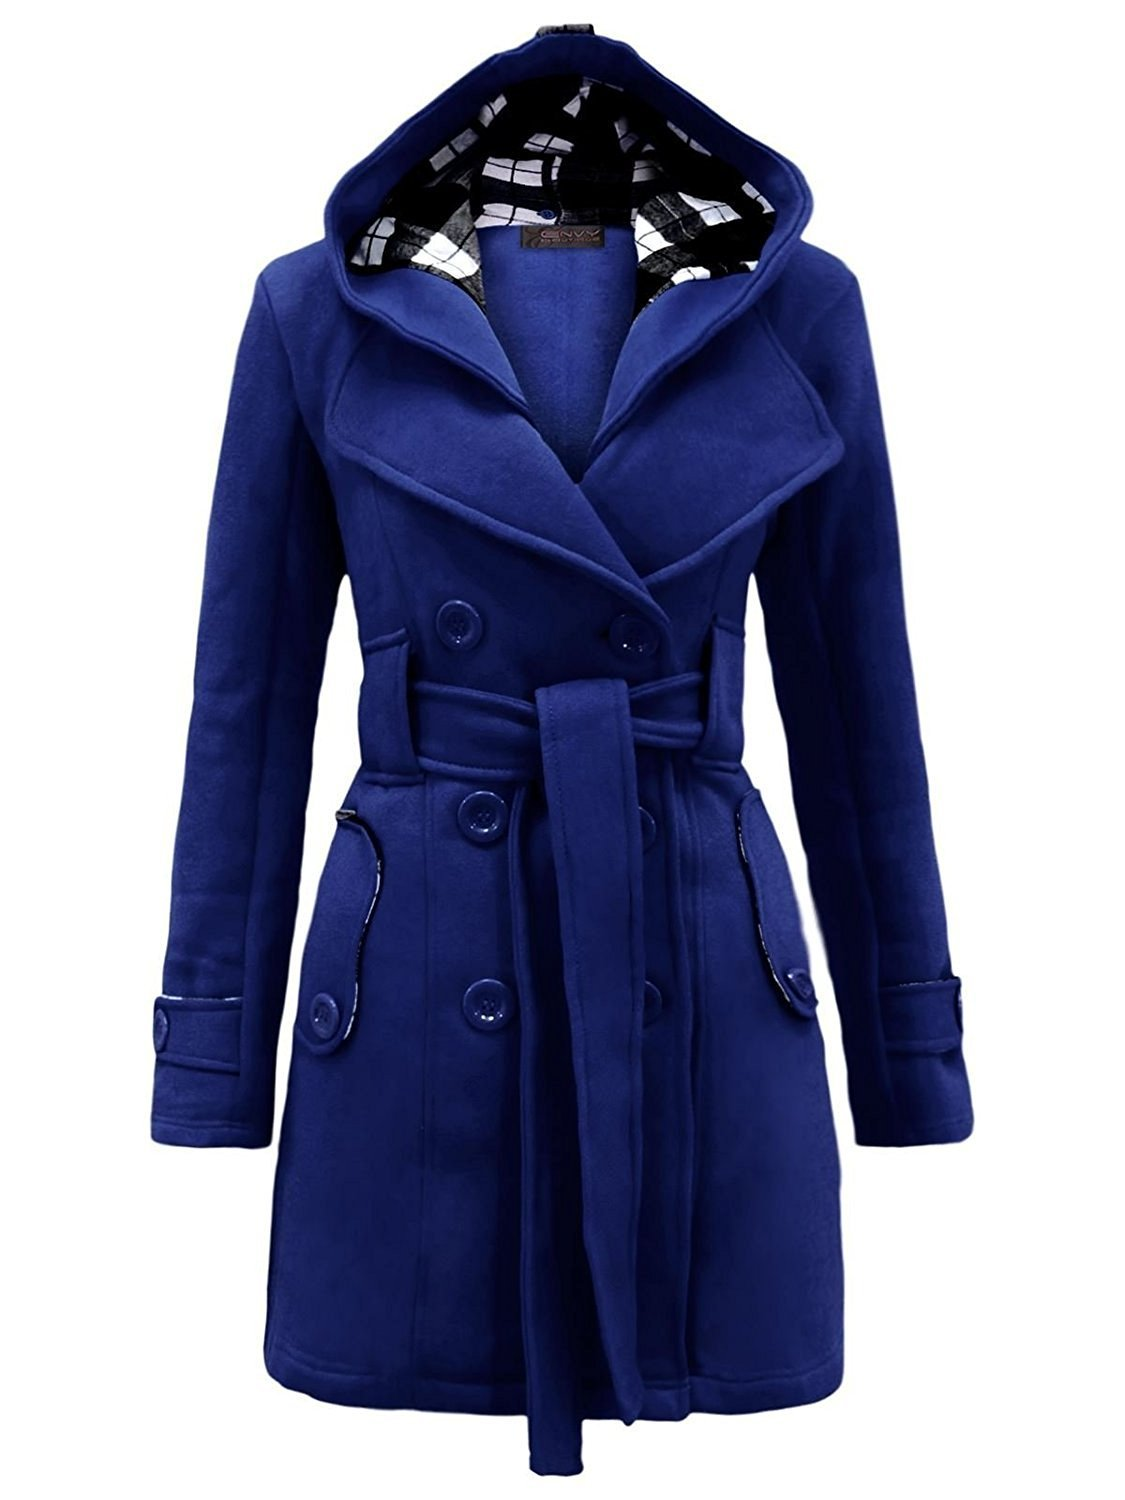 Aro Lora Women's Military Belted Fleece Button Coat Check Hood Jacket X-Large Blue